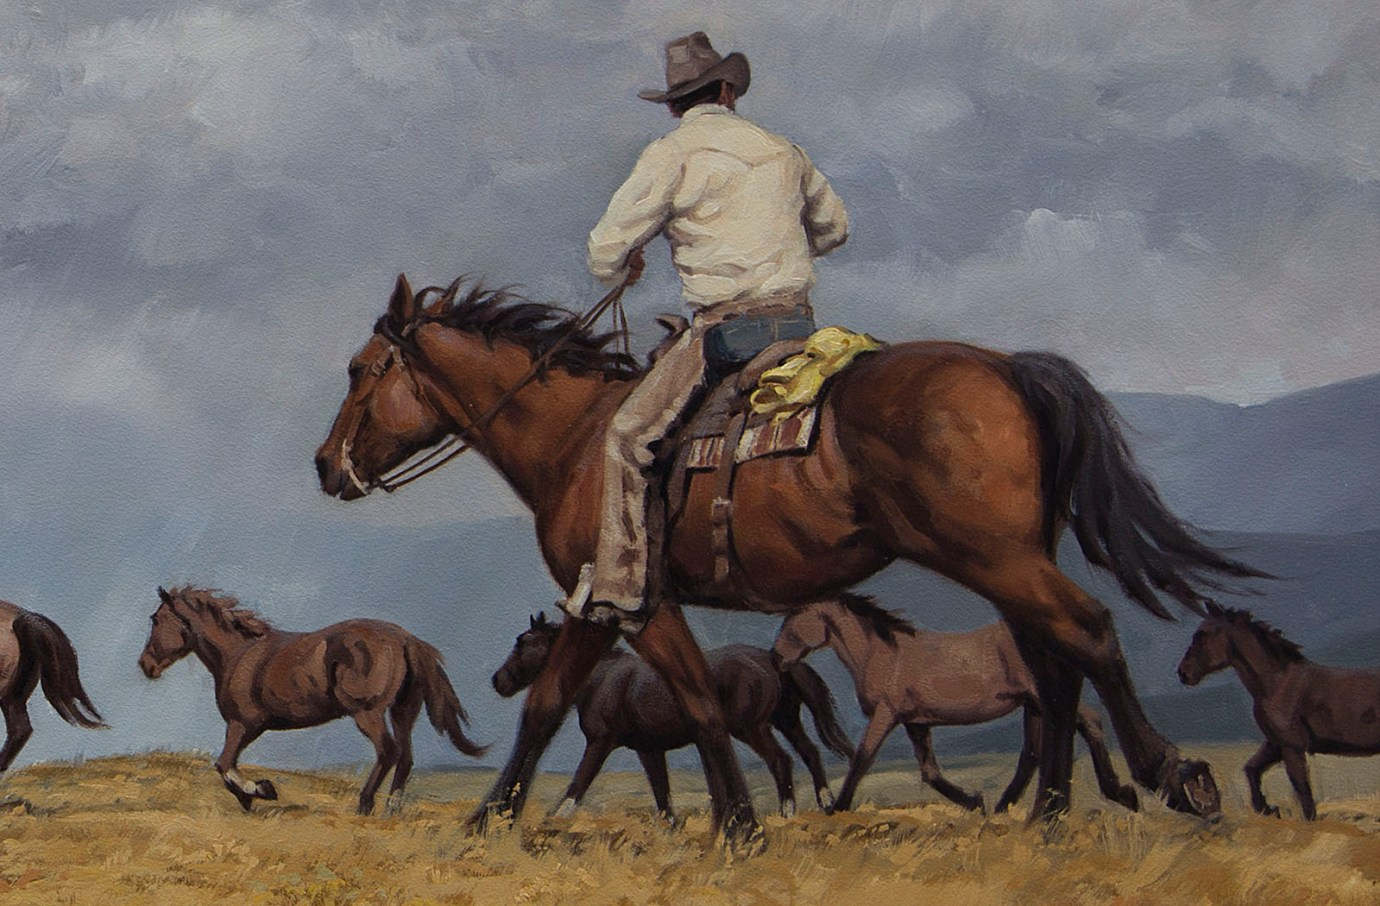 _D4L7461-RichardFreeman-Headin for the corral-no_frame-detail